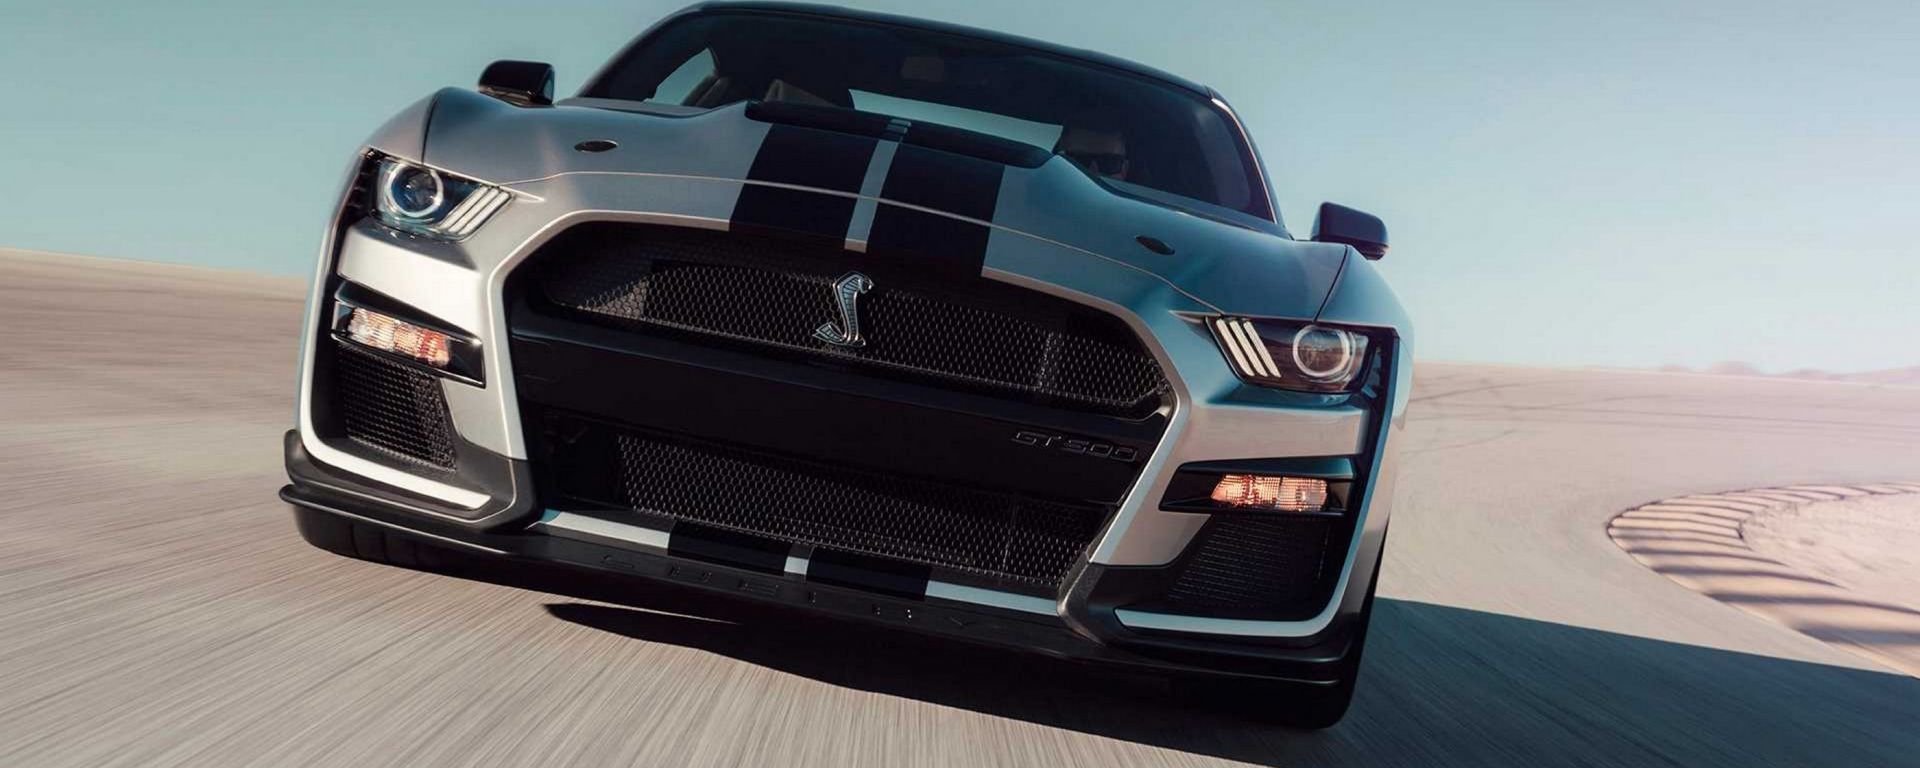 Nuova Ford Mustang Shelby GT500: mai così cazzuta